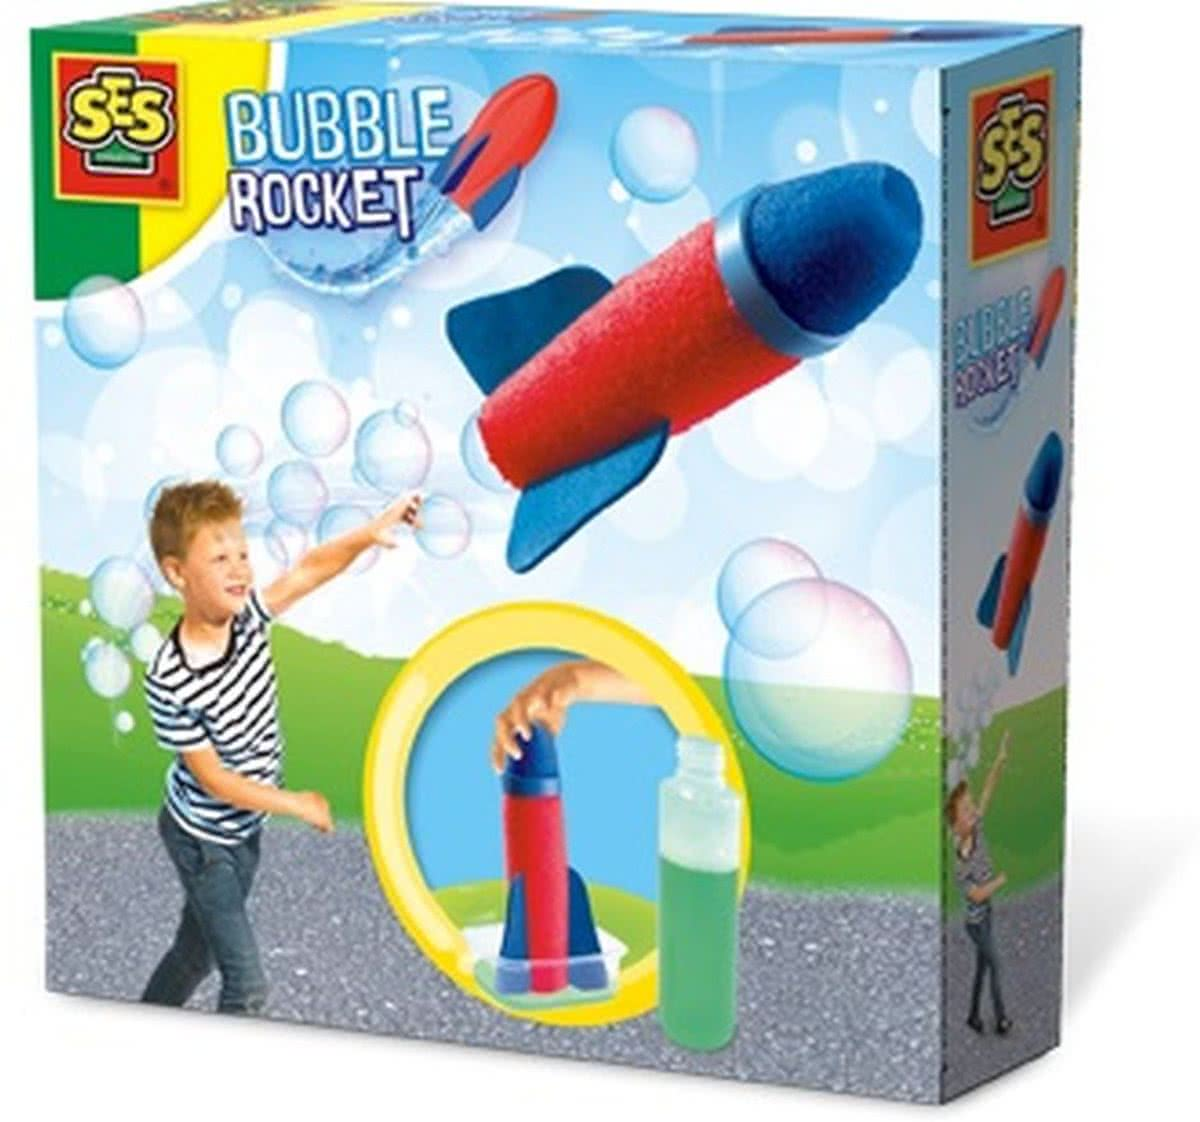 Ses Outdoor bubble rocket02254